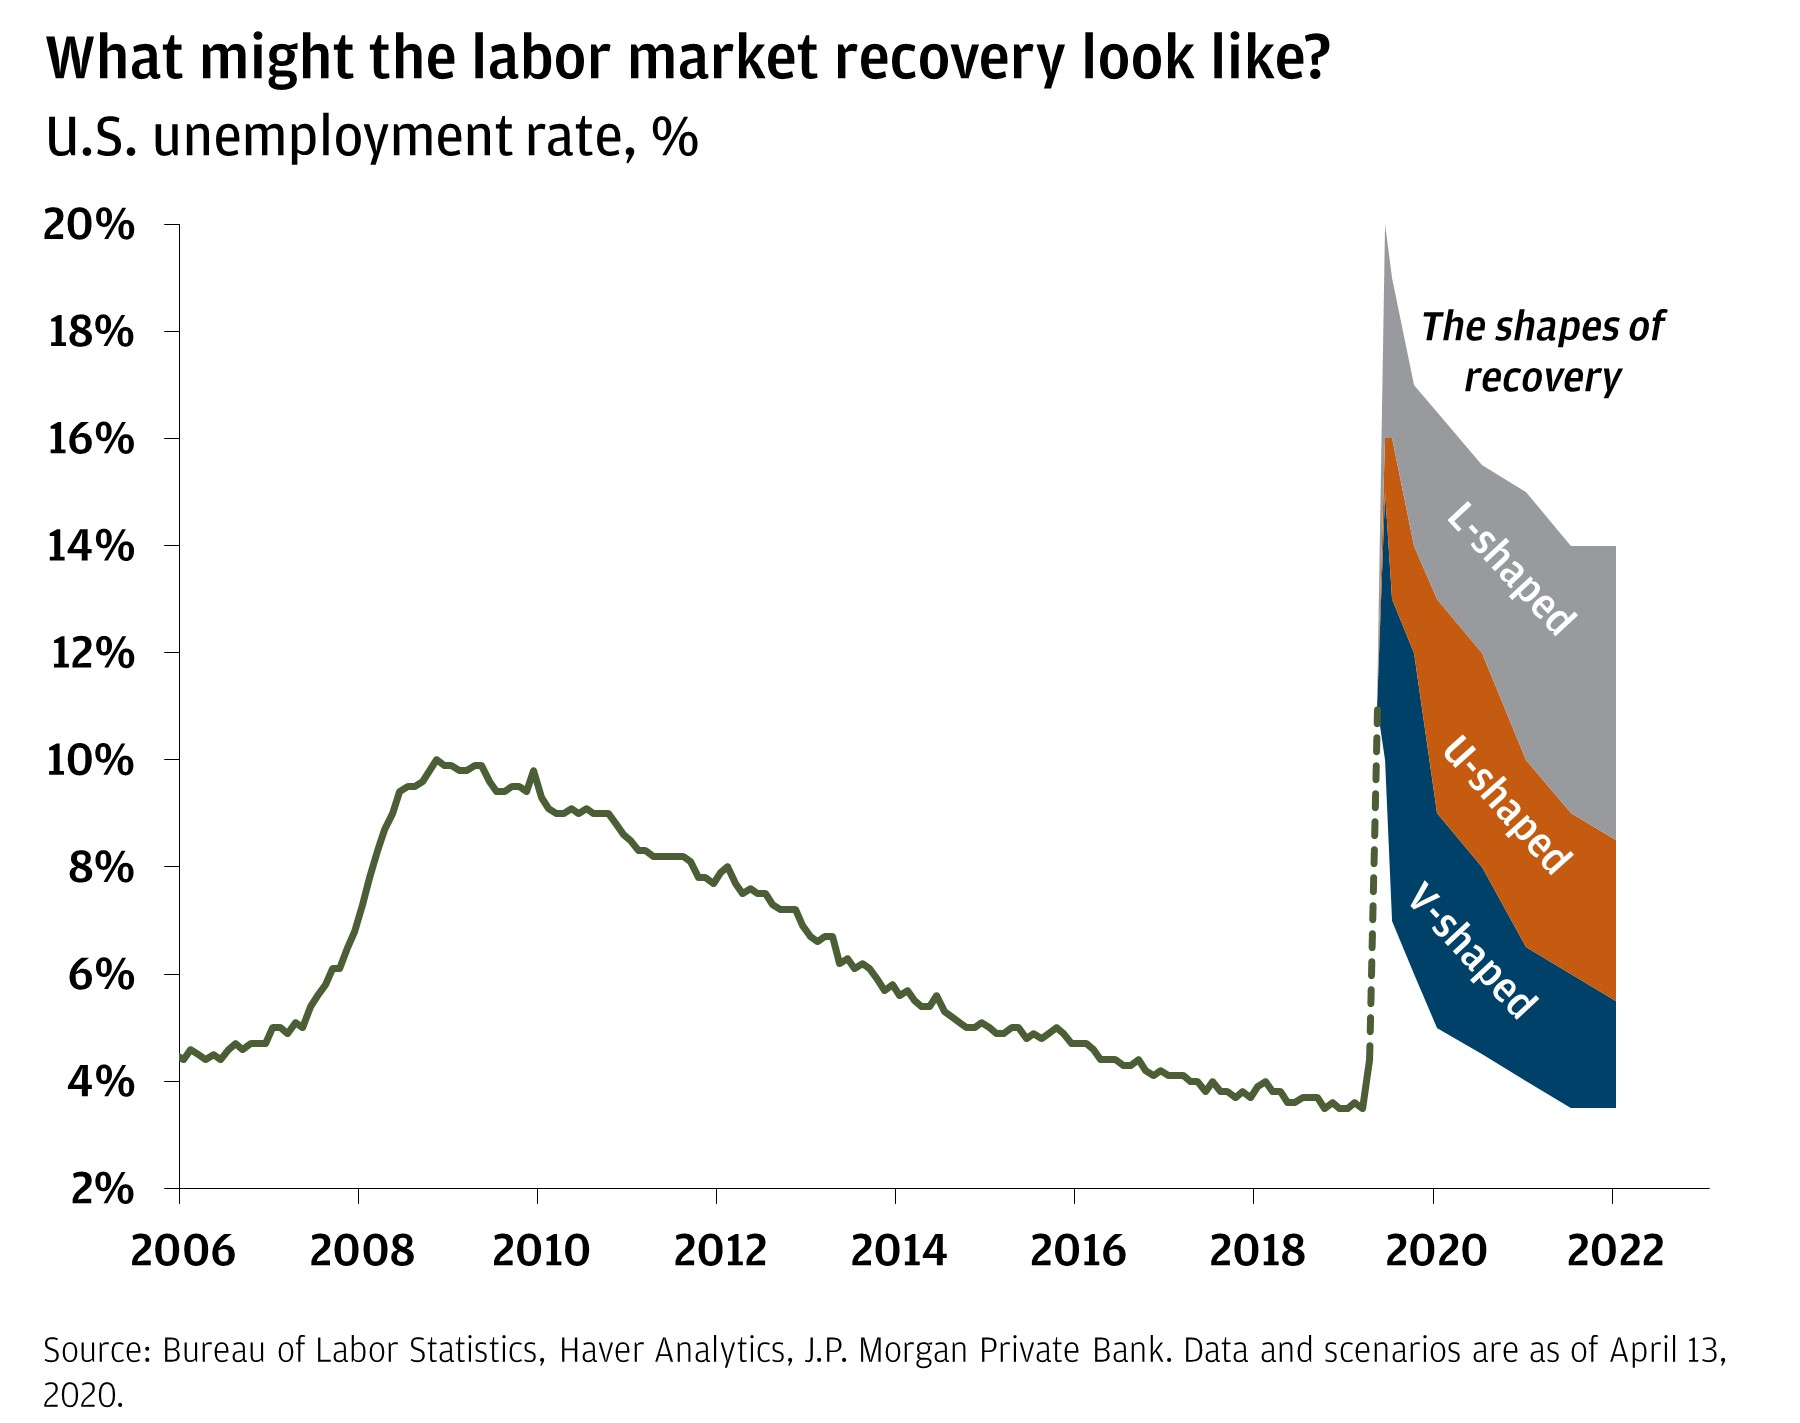 The chart shows the unemployment rate from 2006 projected through 2022. It shows three different potential projections based on the L, U, and V options for recovery.